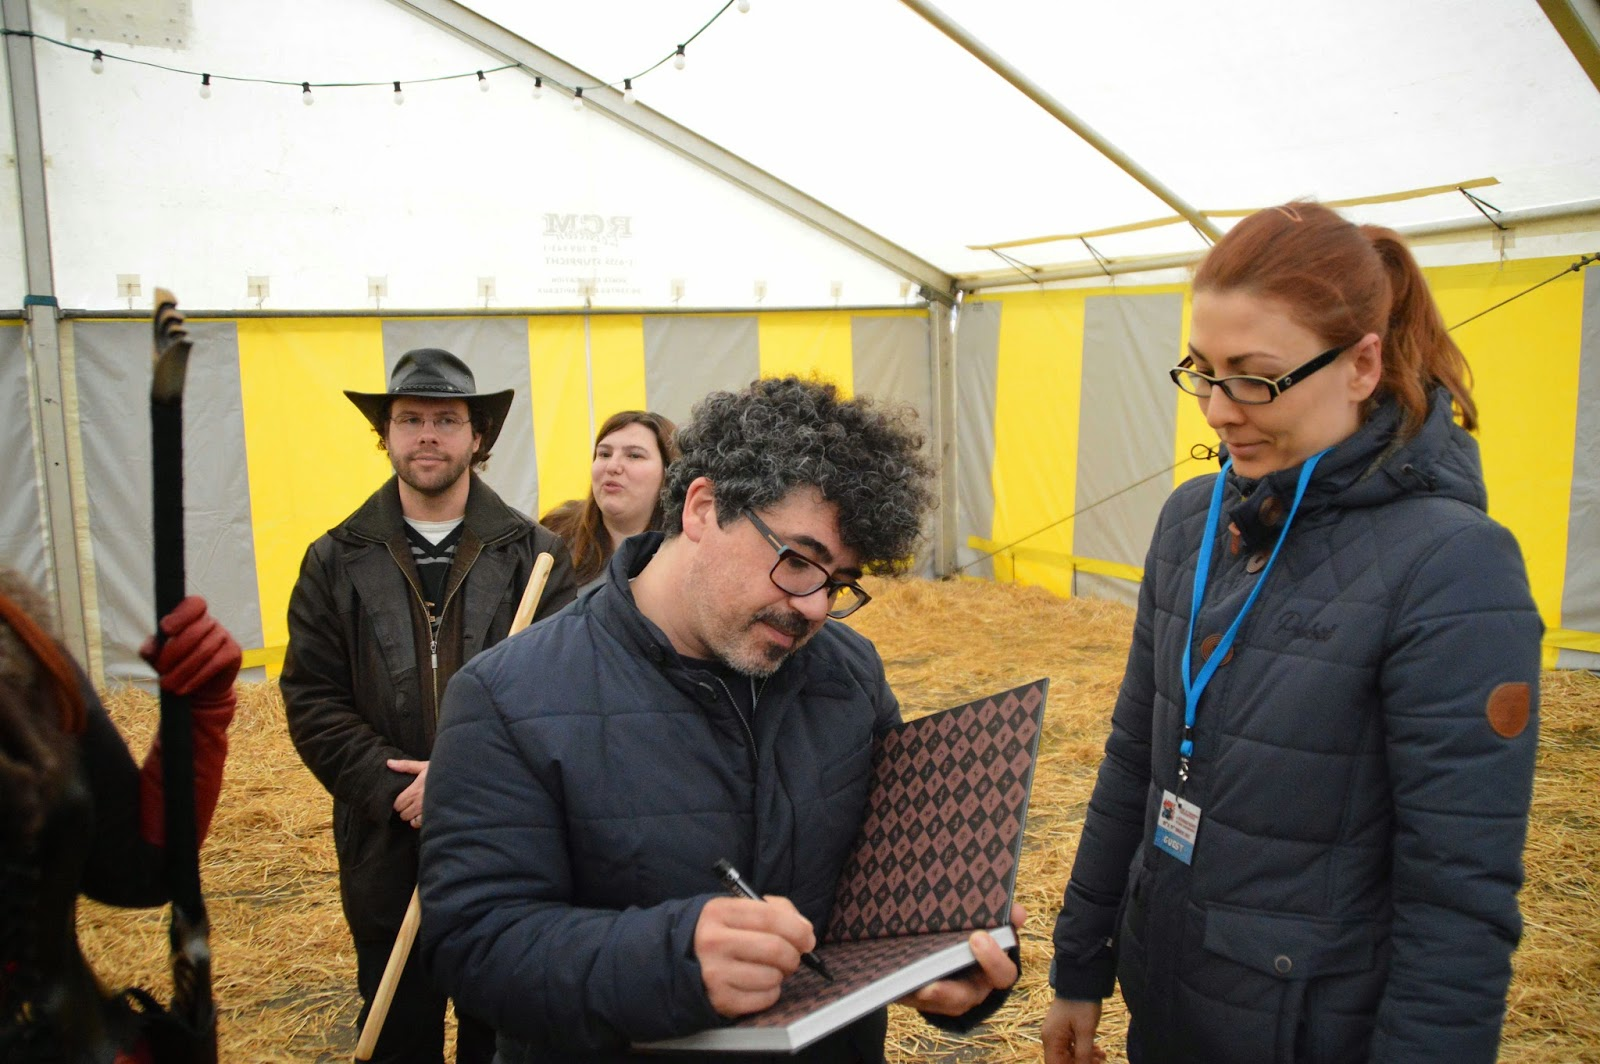 miltos yerolemou gaymiltos yerolemou wikipedia, miltos yerolemou height, miltos yerolemou, miltos yerolemou star wars, miltos yerolemou wiki, miltos yerolemou twitter, miltos yerolemou game of thrones, miltos yerolemou greek, miltos yerolemou age, miltos yerolemou imdb, miltos yerolemou star wars character, miltos yerolemou sword training, miltos yerolemou star wars 7, miltos yerolemou interview, miltos yerolemou star wars force awakens, miltos yerolemou gay, miltos yerolemou black books, miltos yerolemou birthday, miltos yerolemou facebook, miltos yerolemou wolf hall